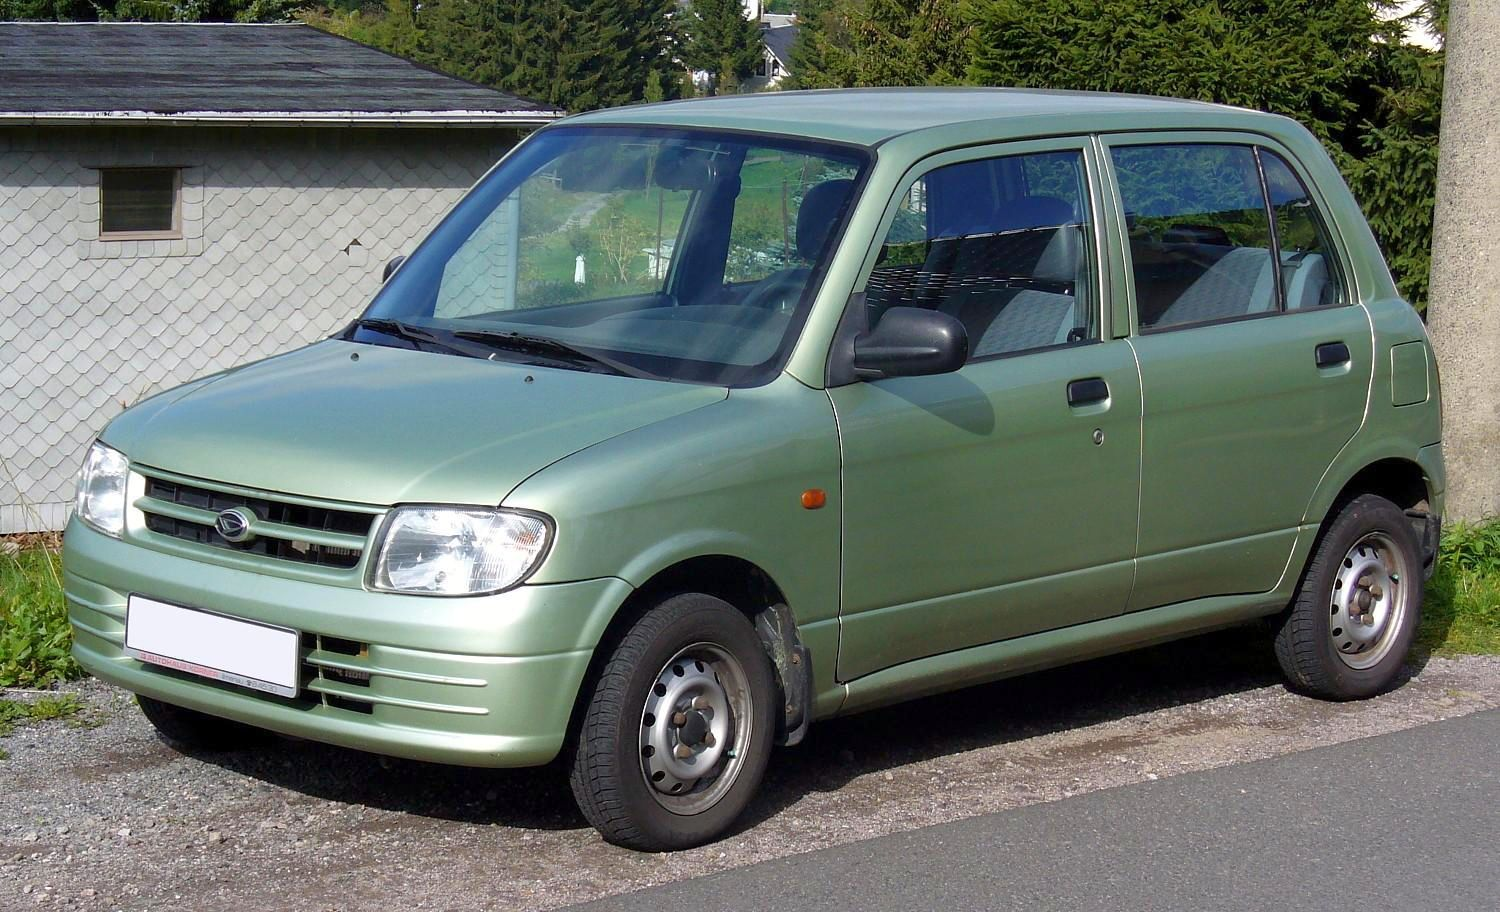 RANK DAIHATSU CAR PICTURES: Daihatsu Cuore Photo Gallery